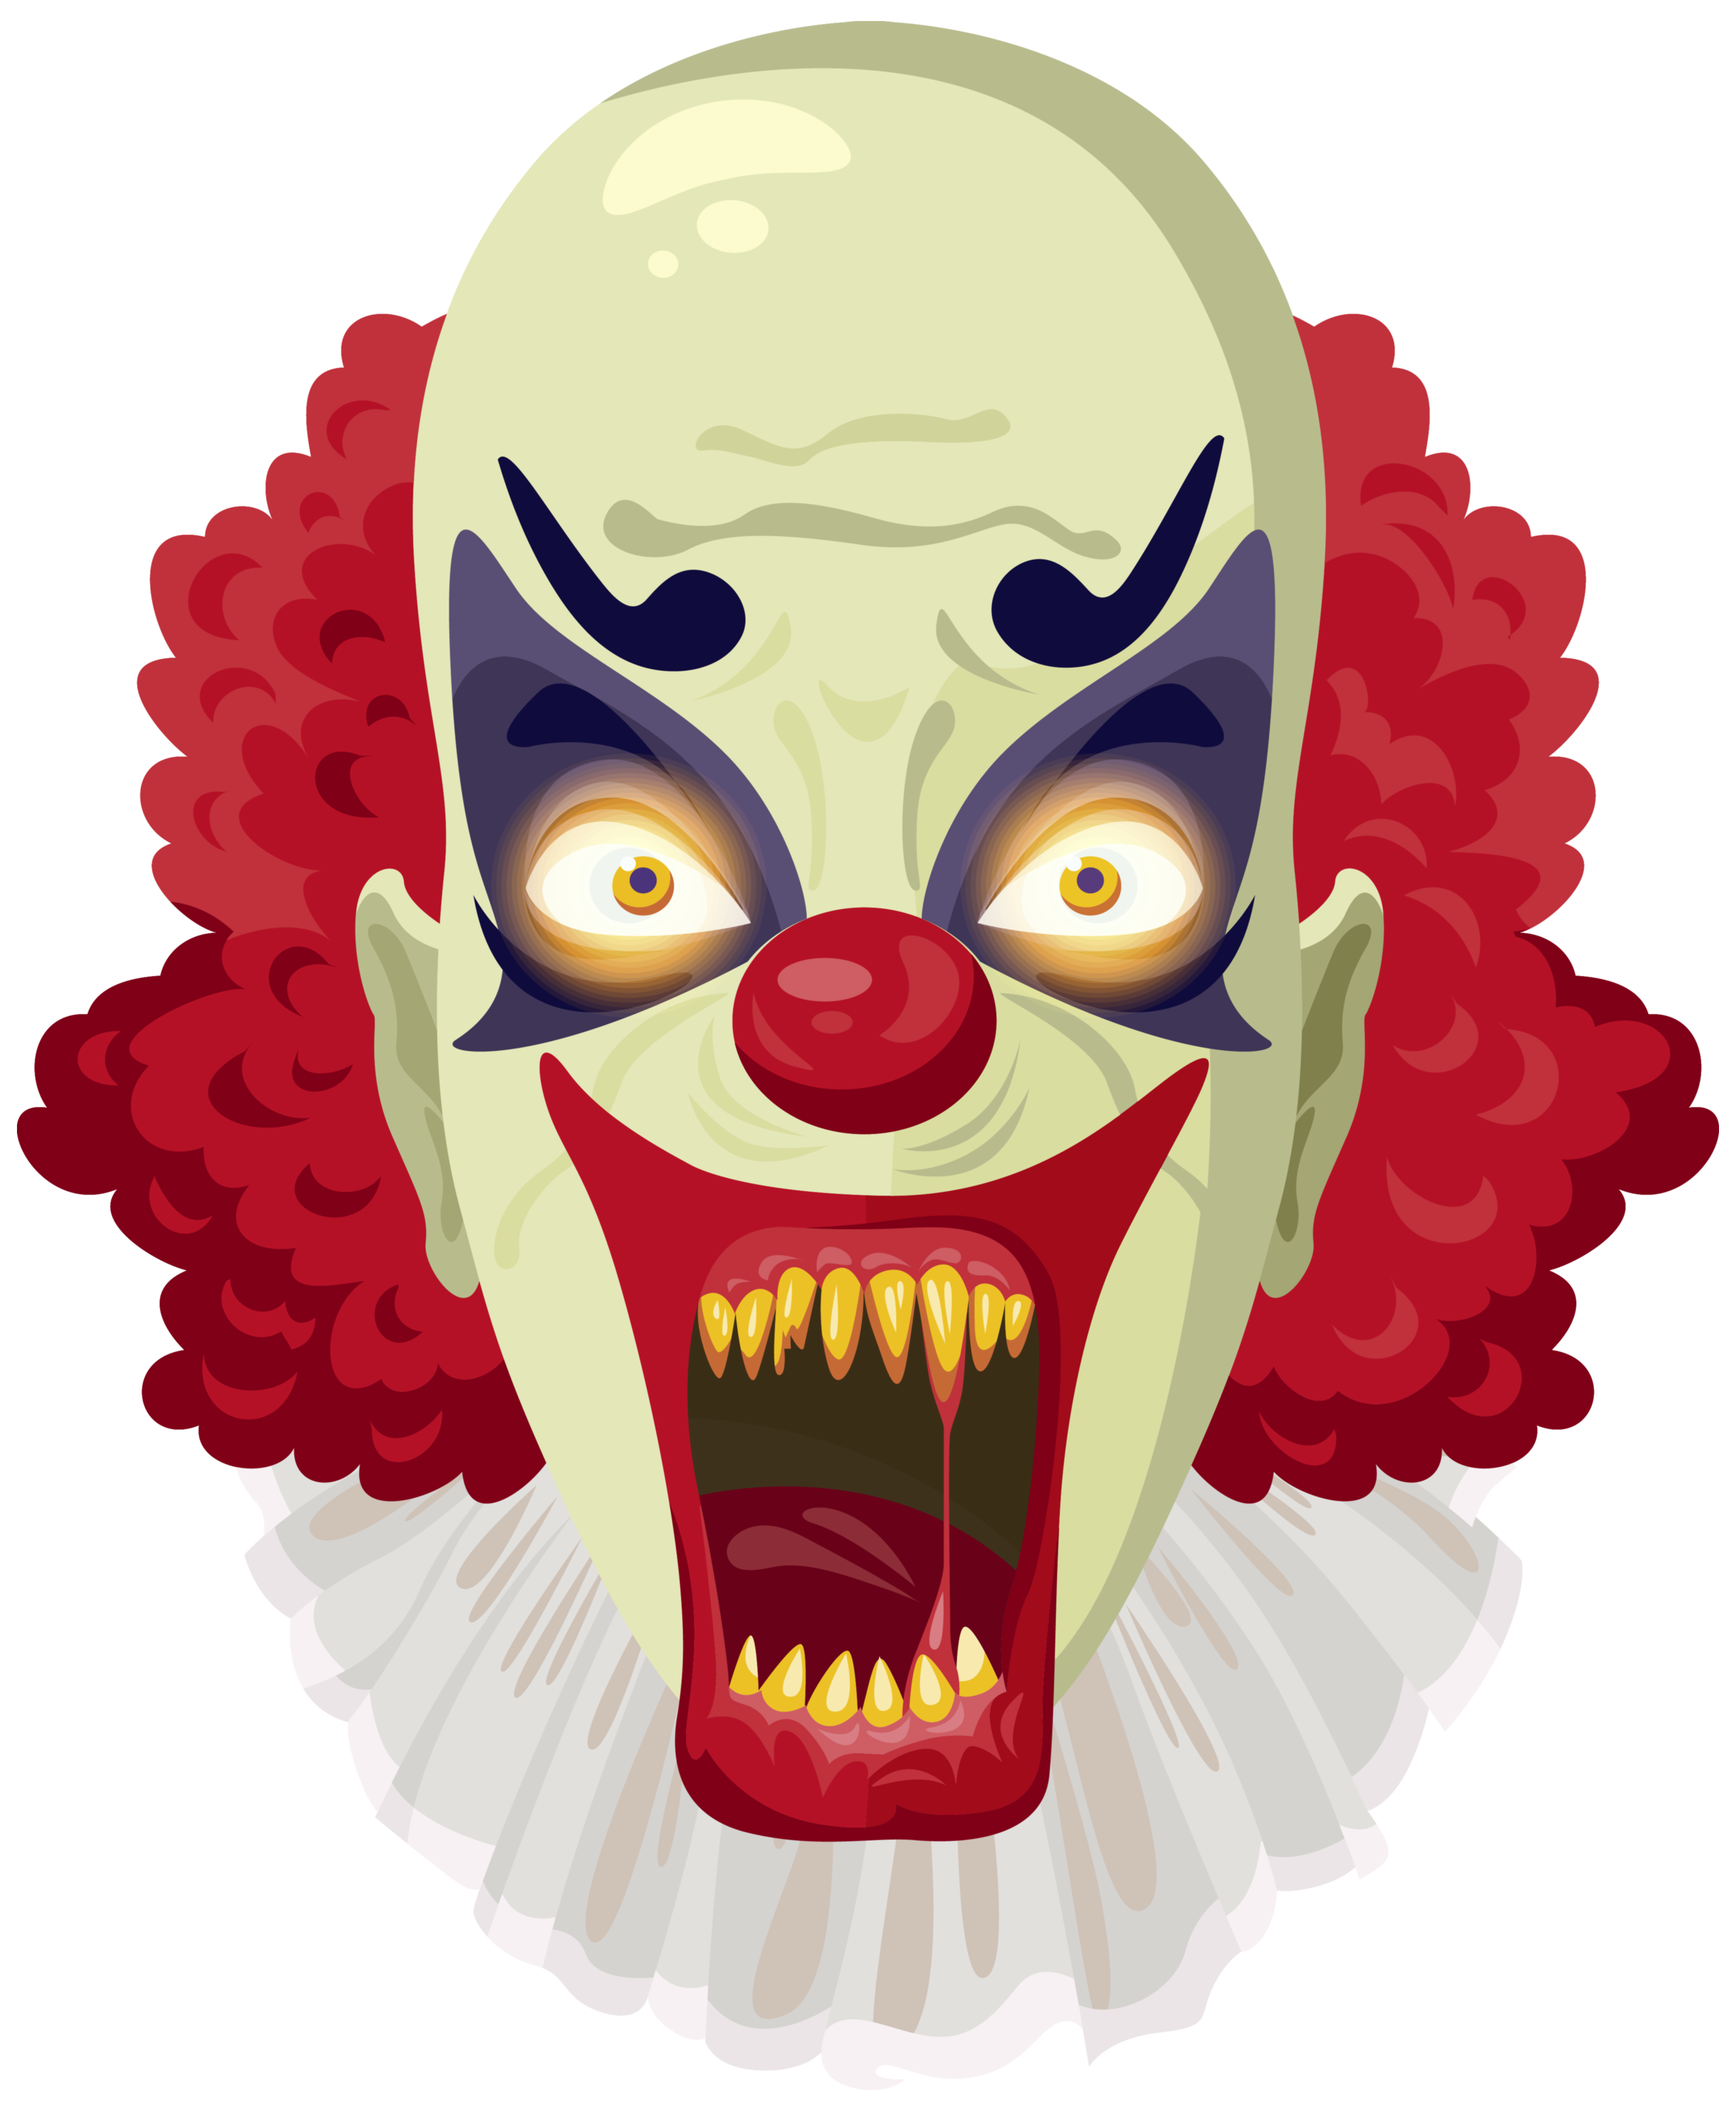 Scary Clown Png Clipart Image Gallery Yopriceville High Quality Images And Transparent Png Free Clipart Scary Clowns Halloween Clipart Creepy Clown